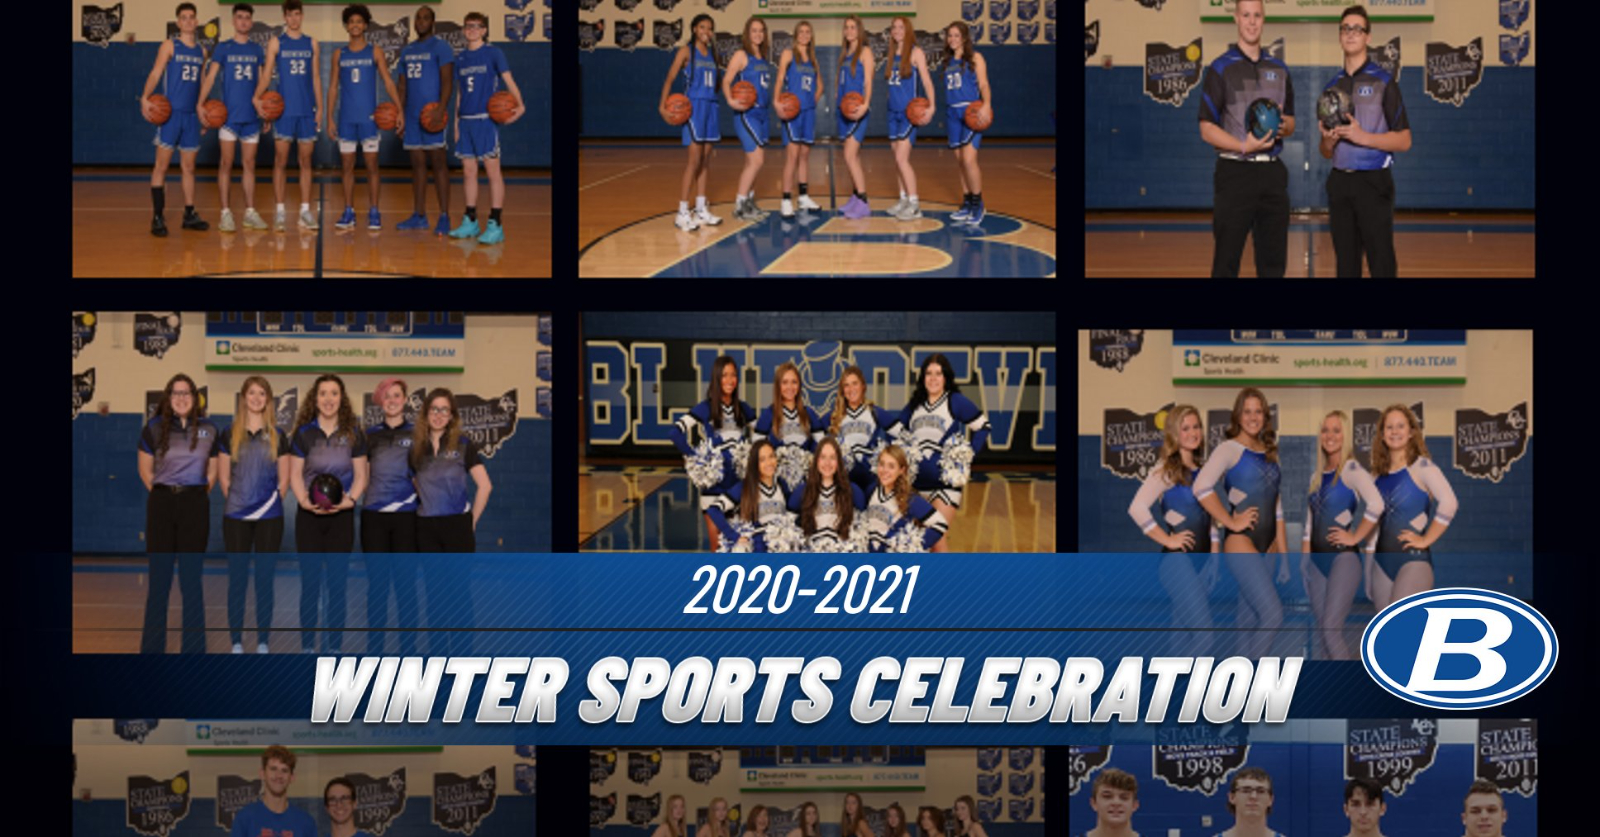 2020-2021 Winter Sports Celebration